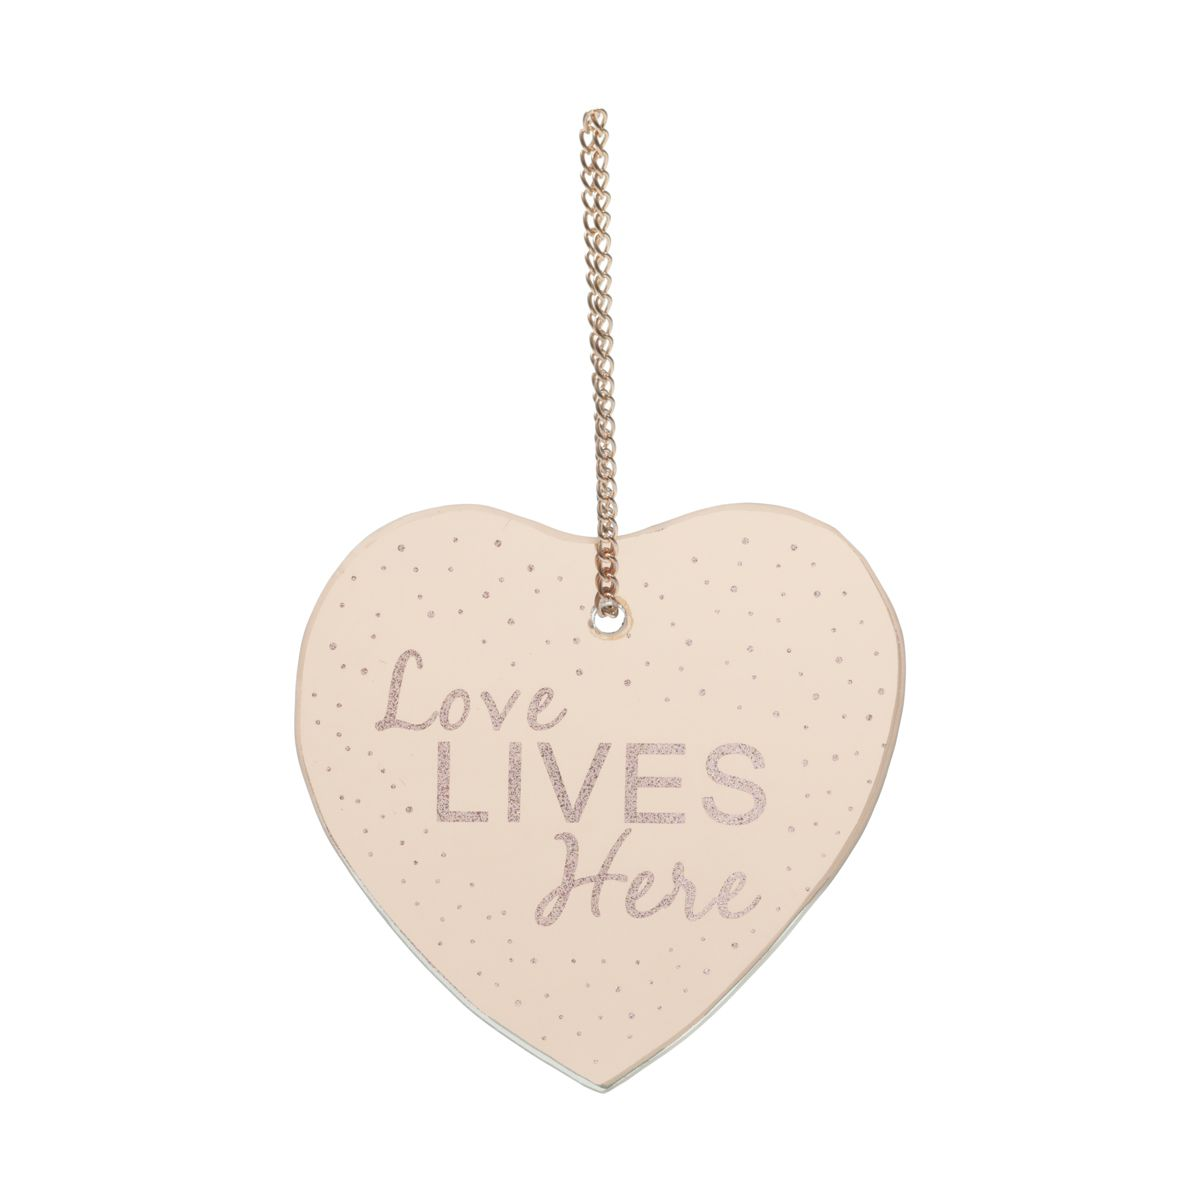 PLACA METAL MIRROR HEART SHAPE LOVE COBRE 12X12,5 CM - URBAN 42573